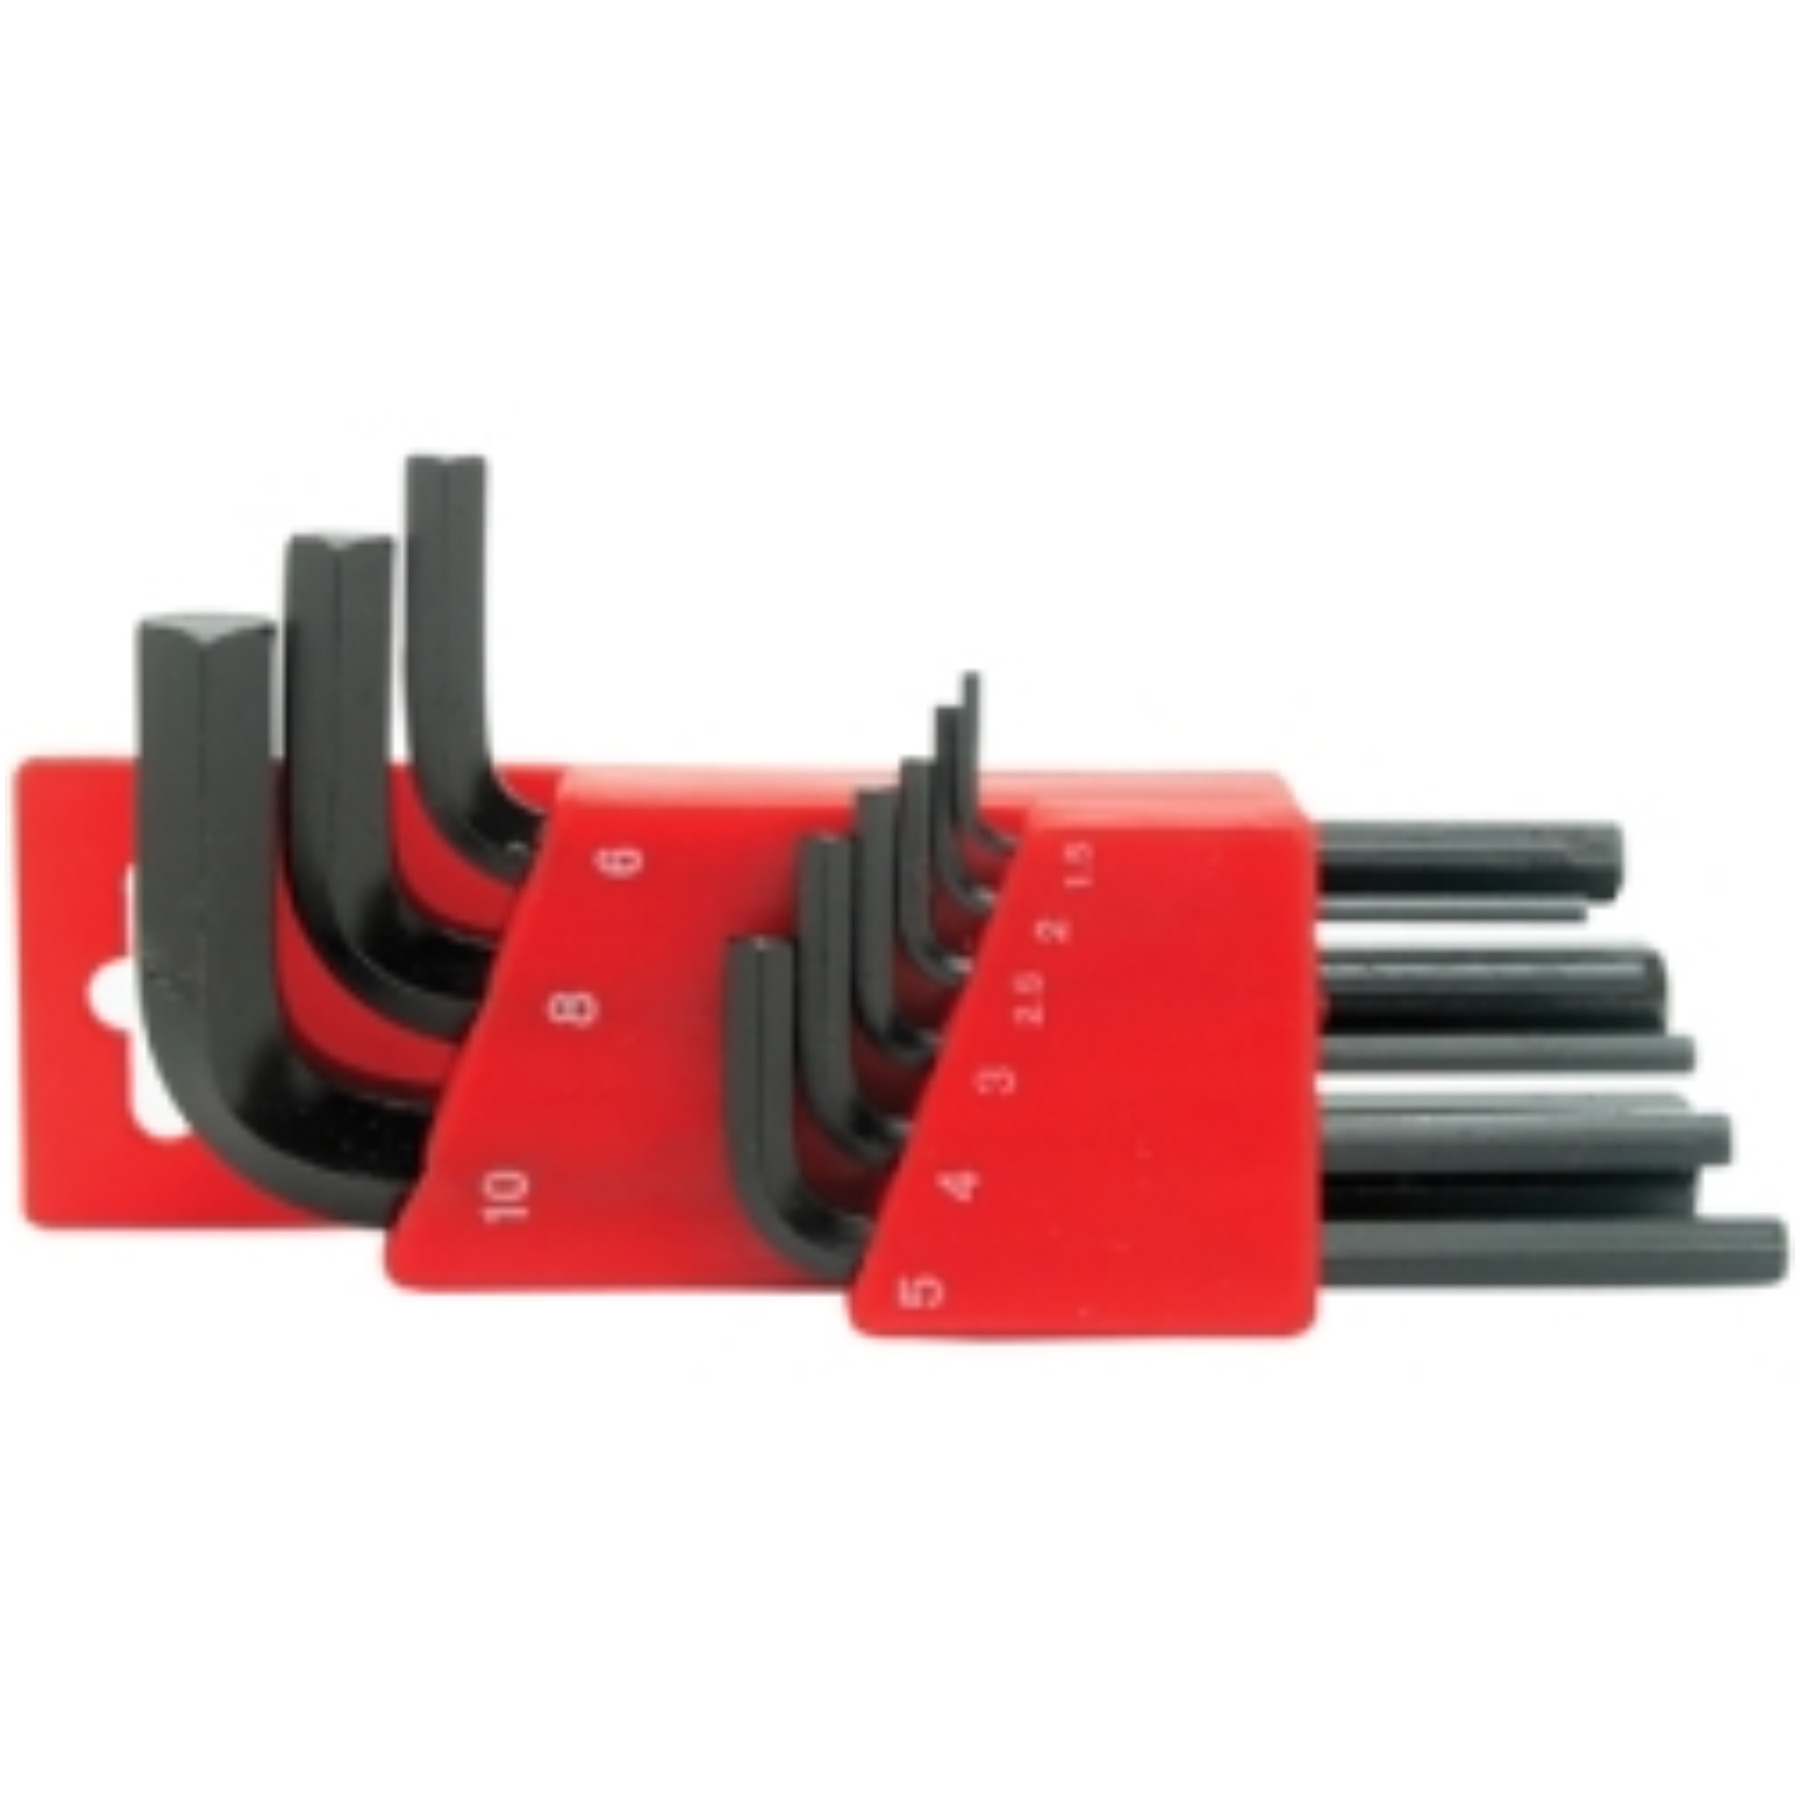 9 PC HEX KEY SET MM